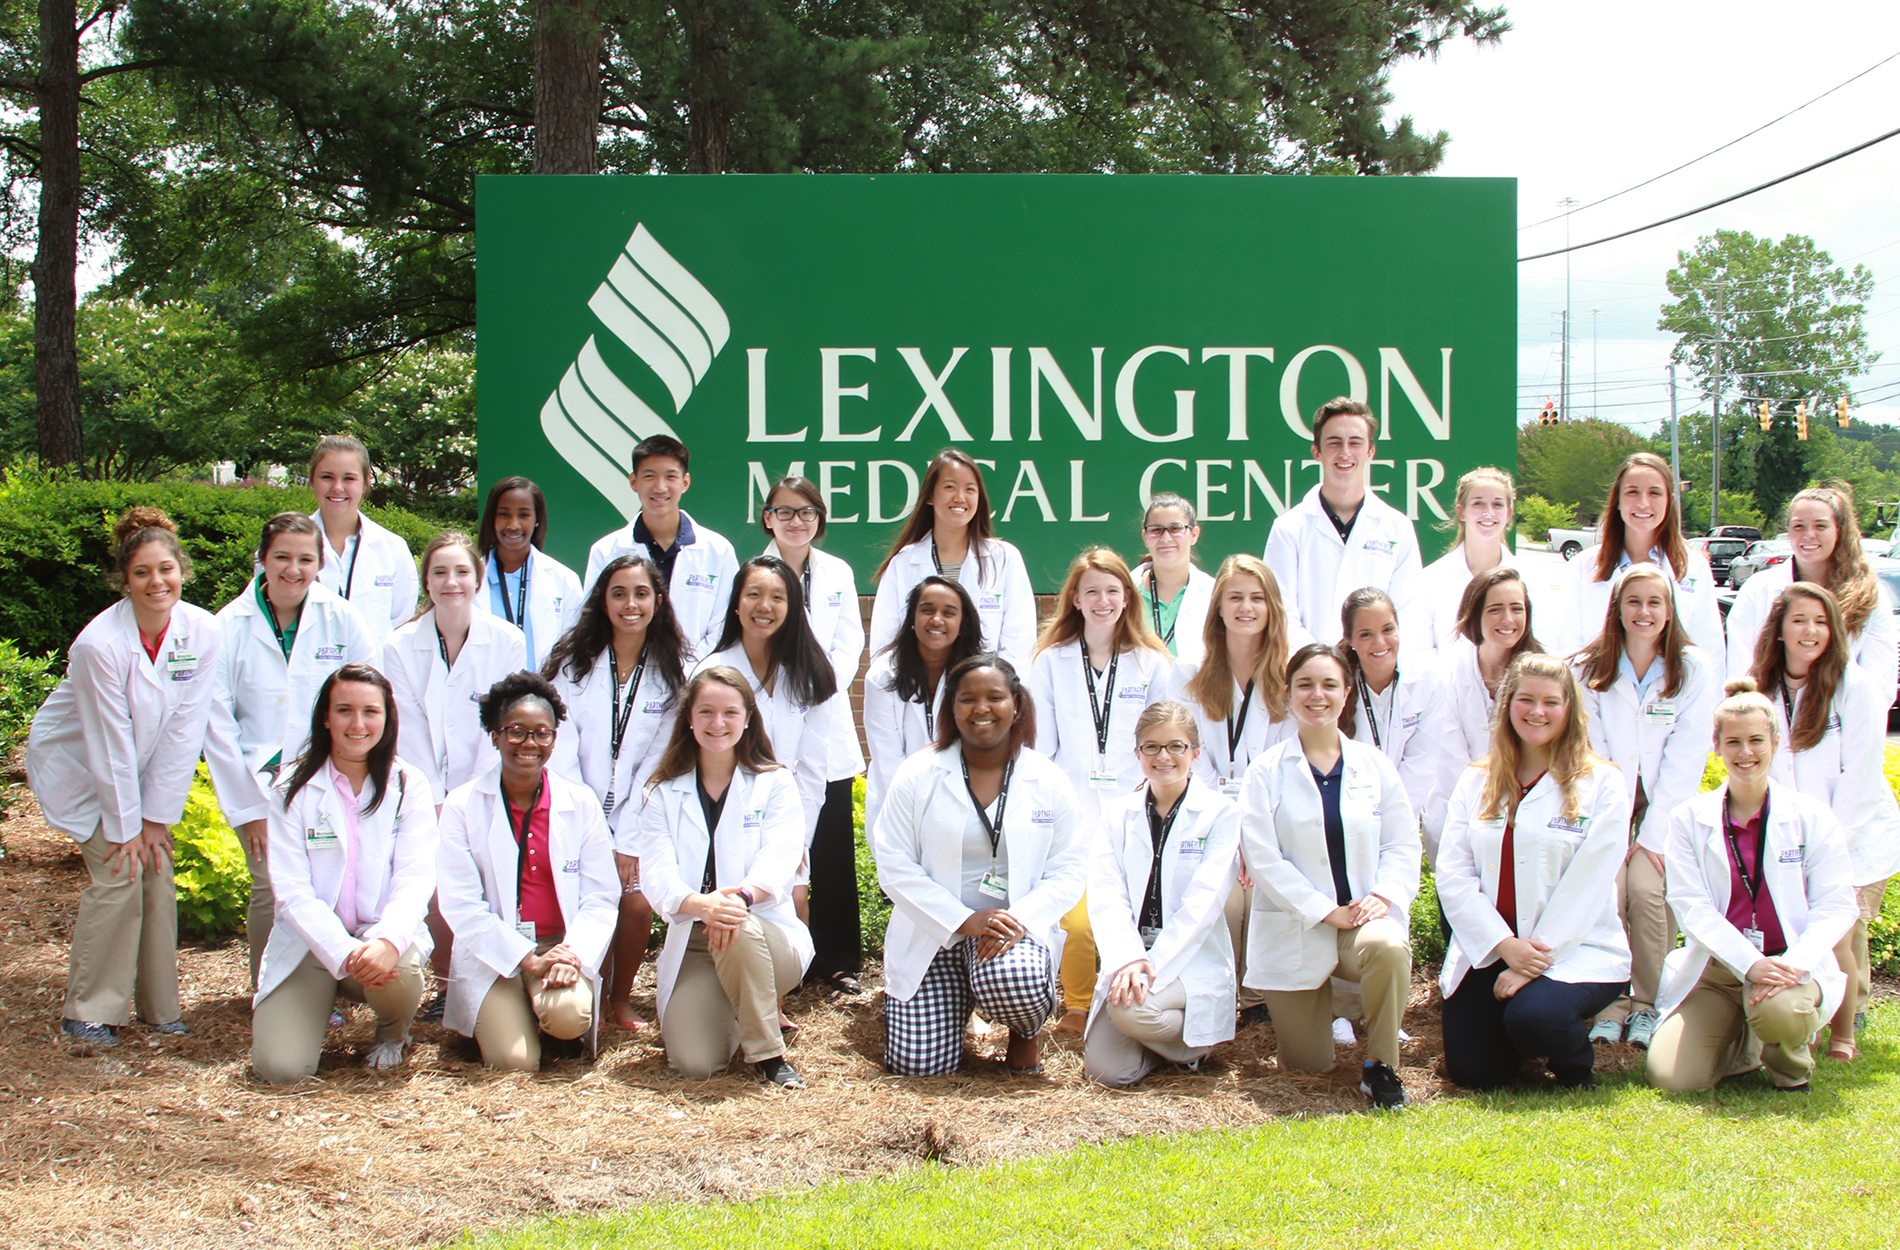 Students in front of Lexington Medical Center sign